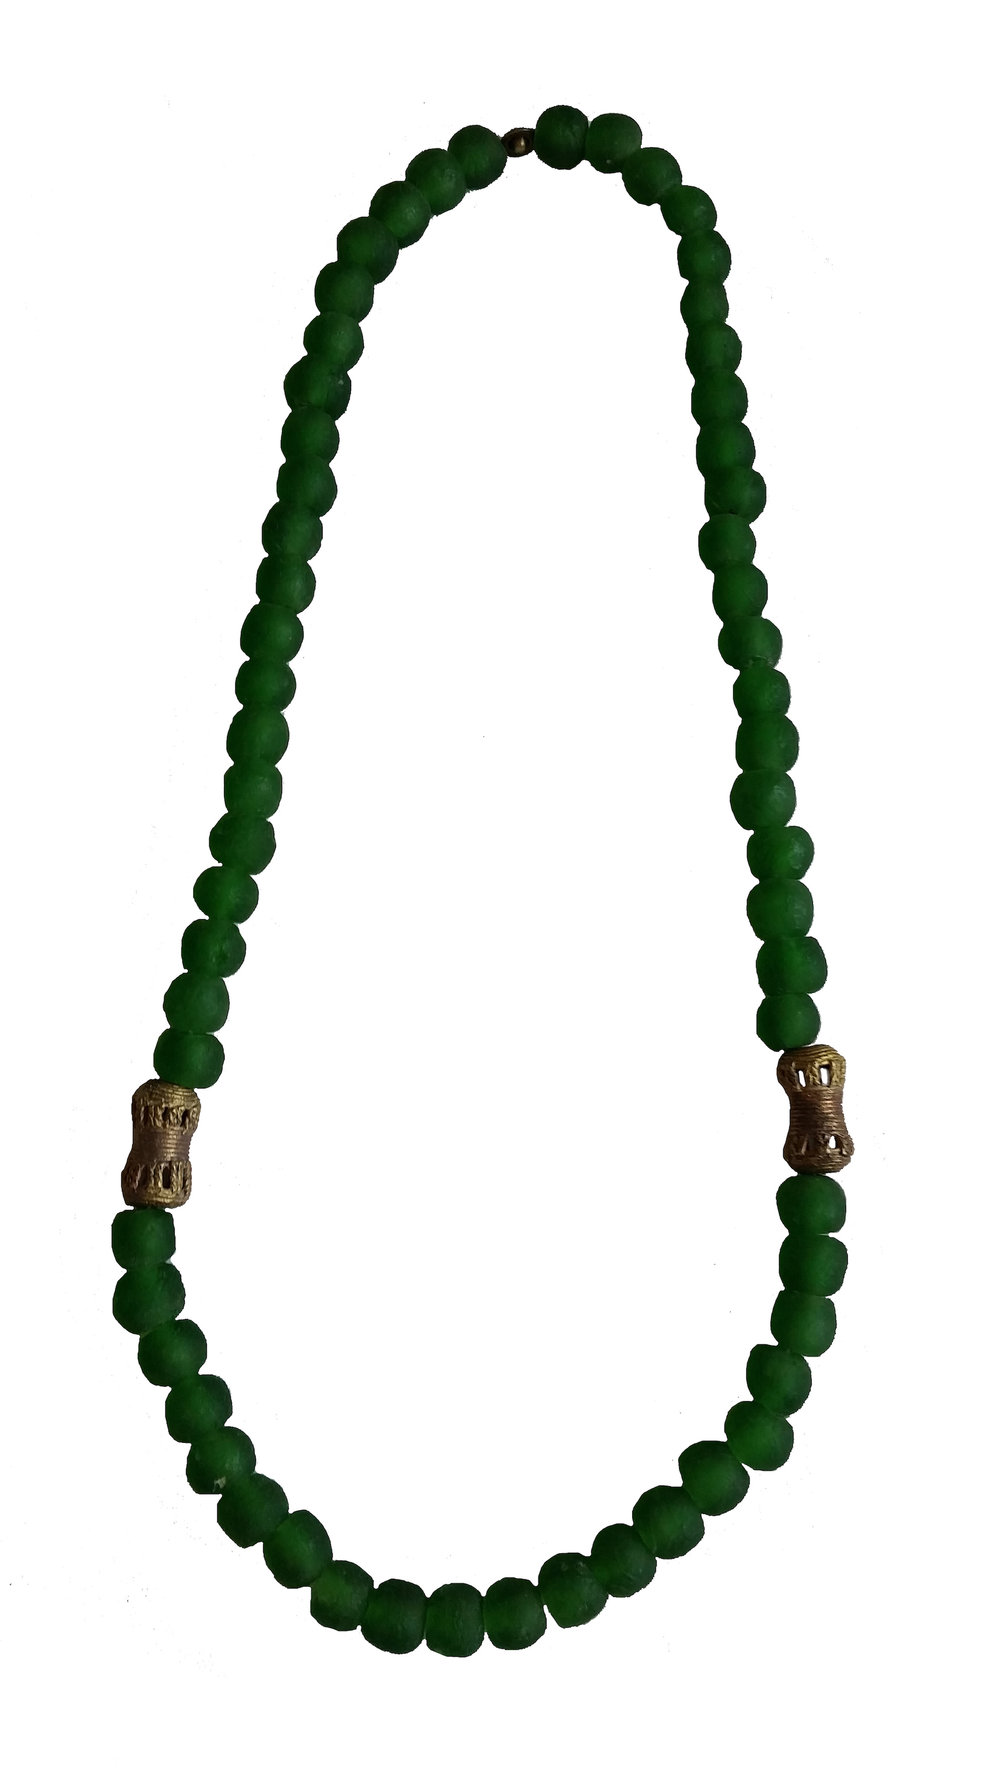 GLASS BEAD & BRONZE NECKLACE   Handmade recycled glass beads from Ghana's Volta region and lost wax cast bronze beads from Ghana's Ashanti region.